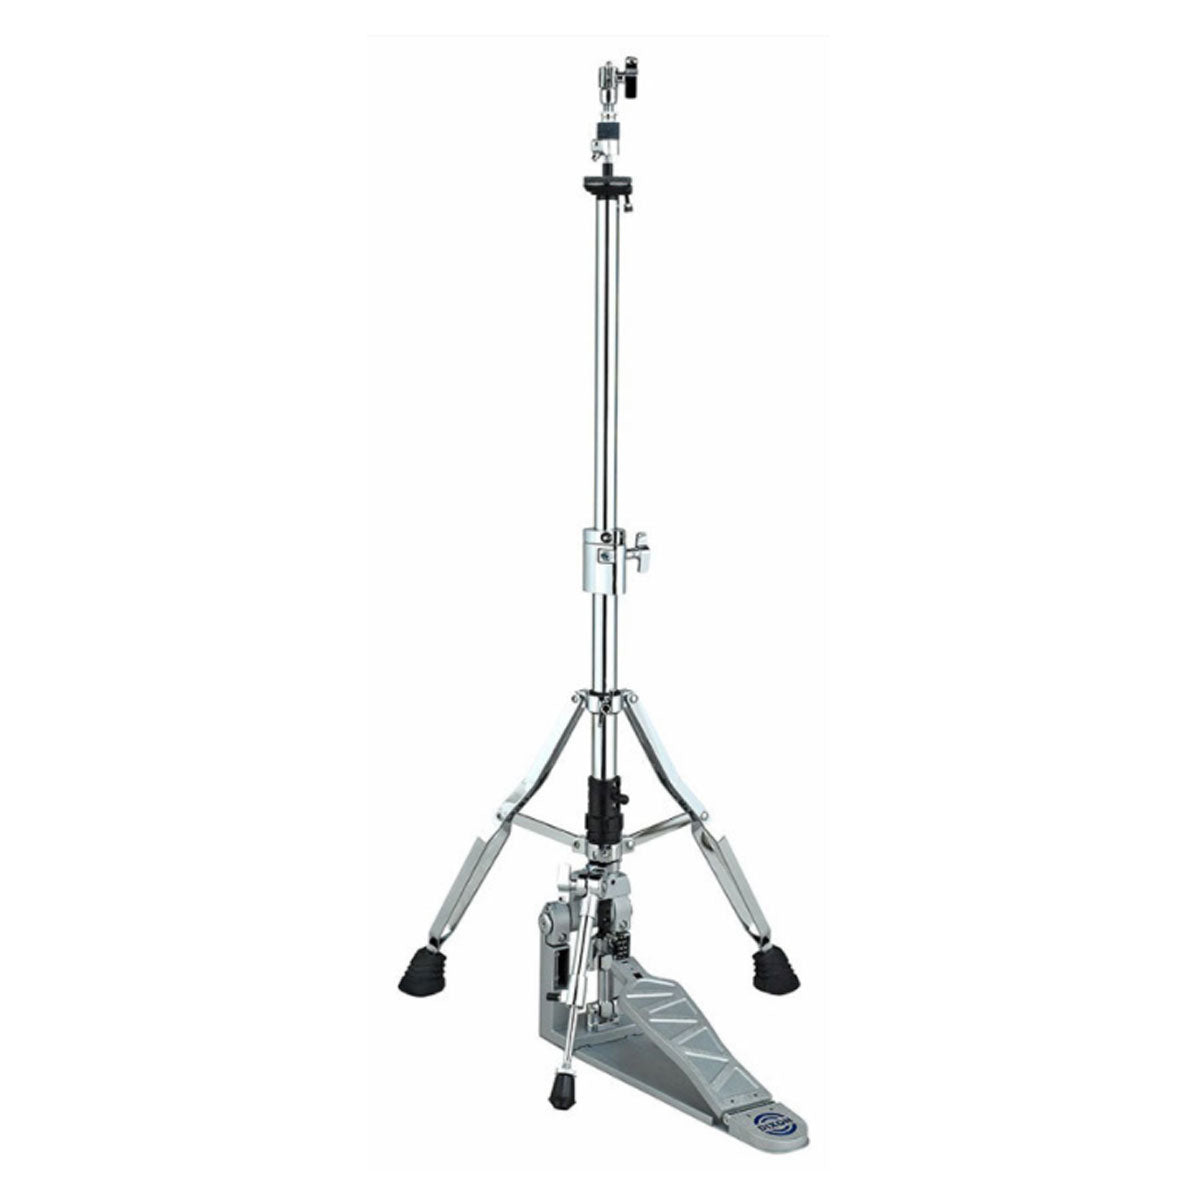 Dixon K Series Hi Hat Stand Heavy-Weight Double Braced - PSHK902KS